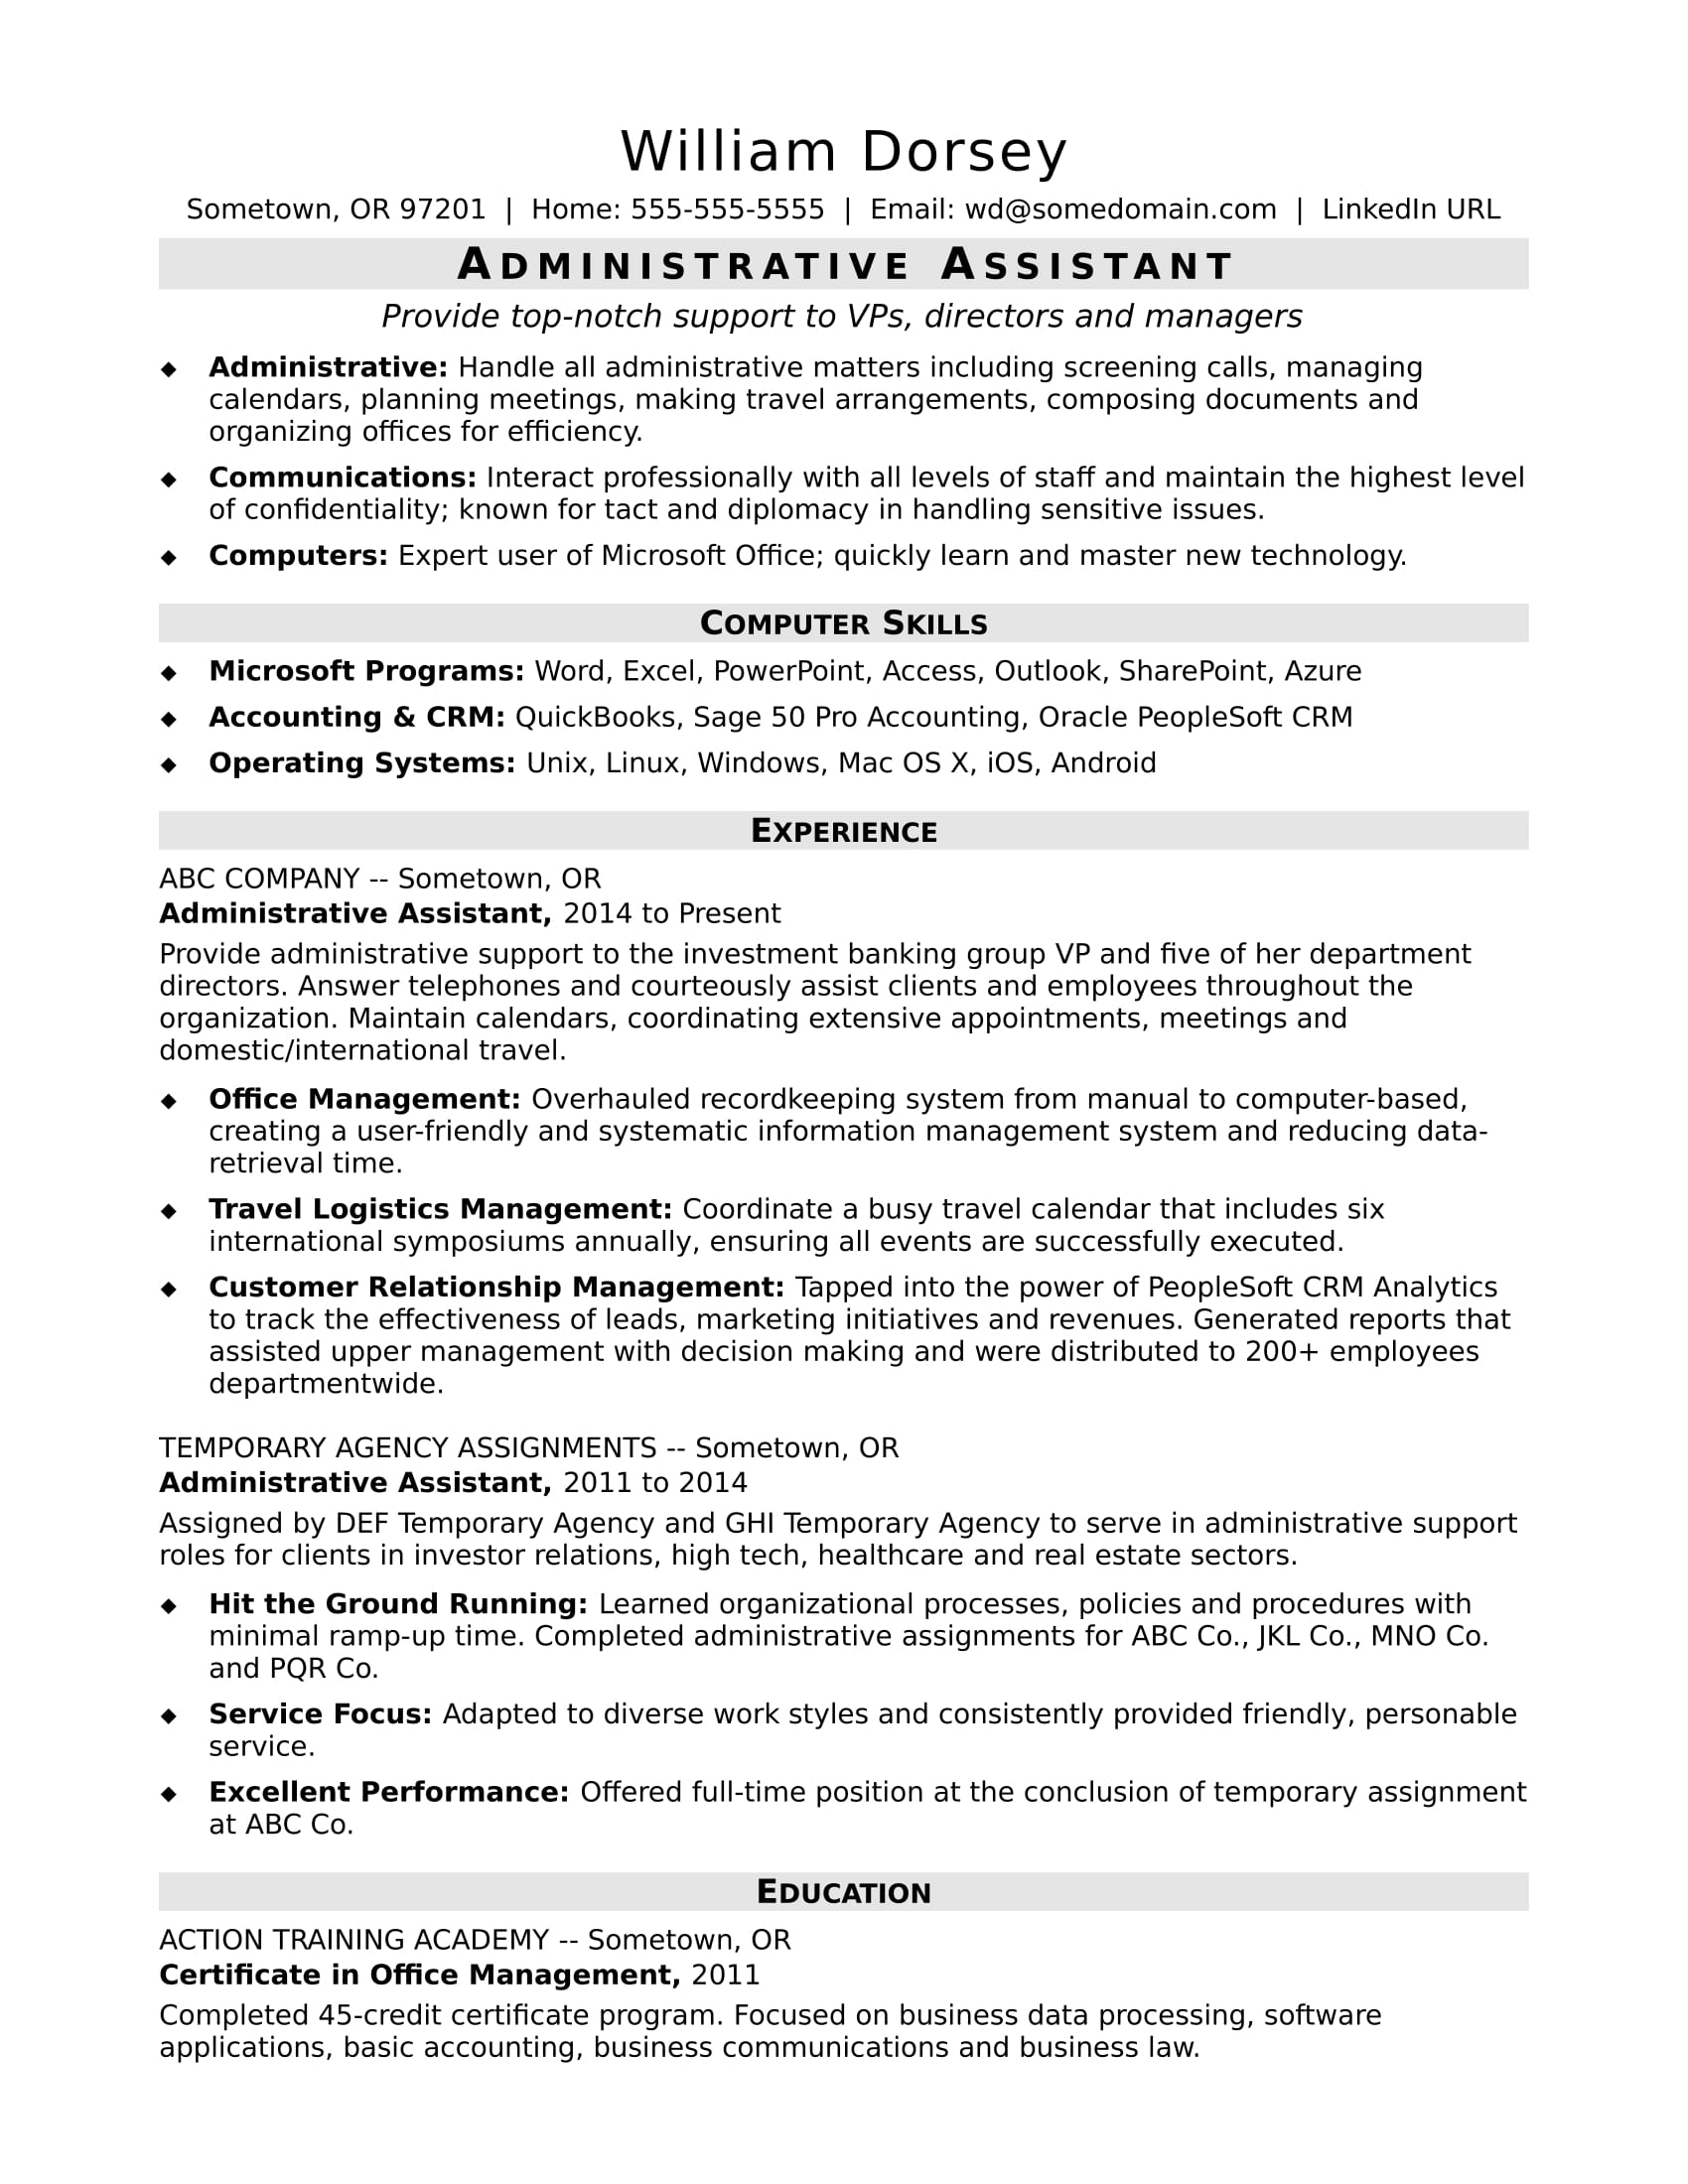 Sample Resume For A Midlevel Administrative Assistant  Computer Skills On Resume Examples